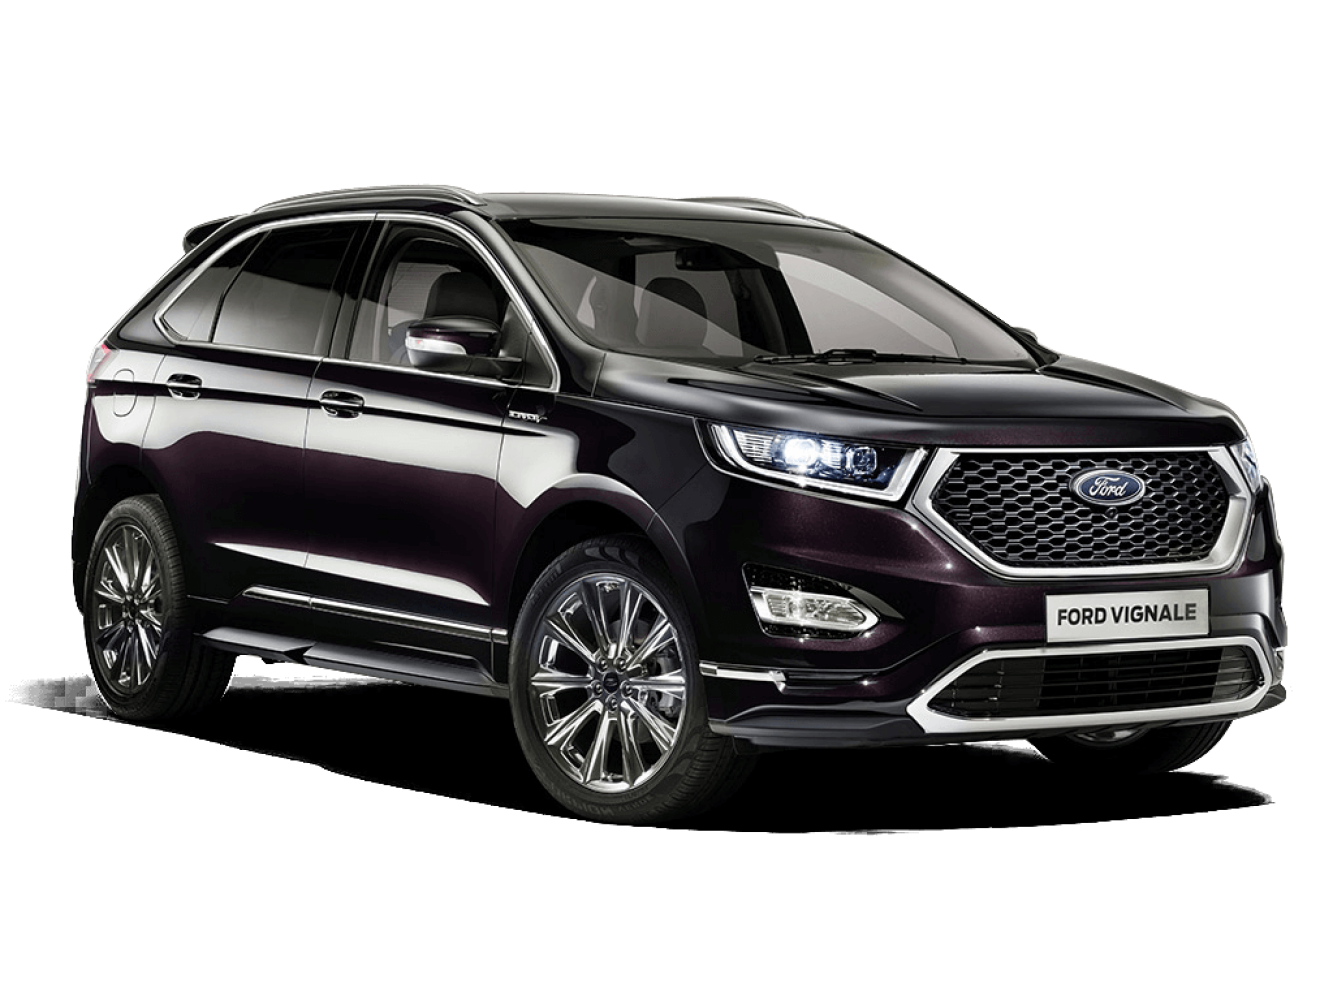 new ford edge vignale 2 0 ecoblue 238 5dr auto diesel estate for sale macklin motors. Black Bedroom Furniture Sets. Home Design Ideas